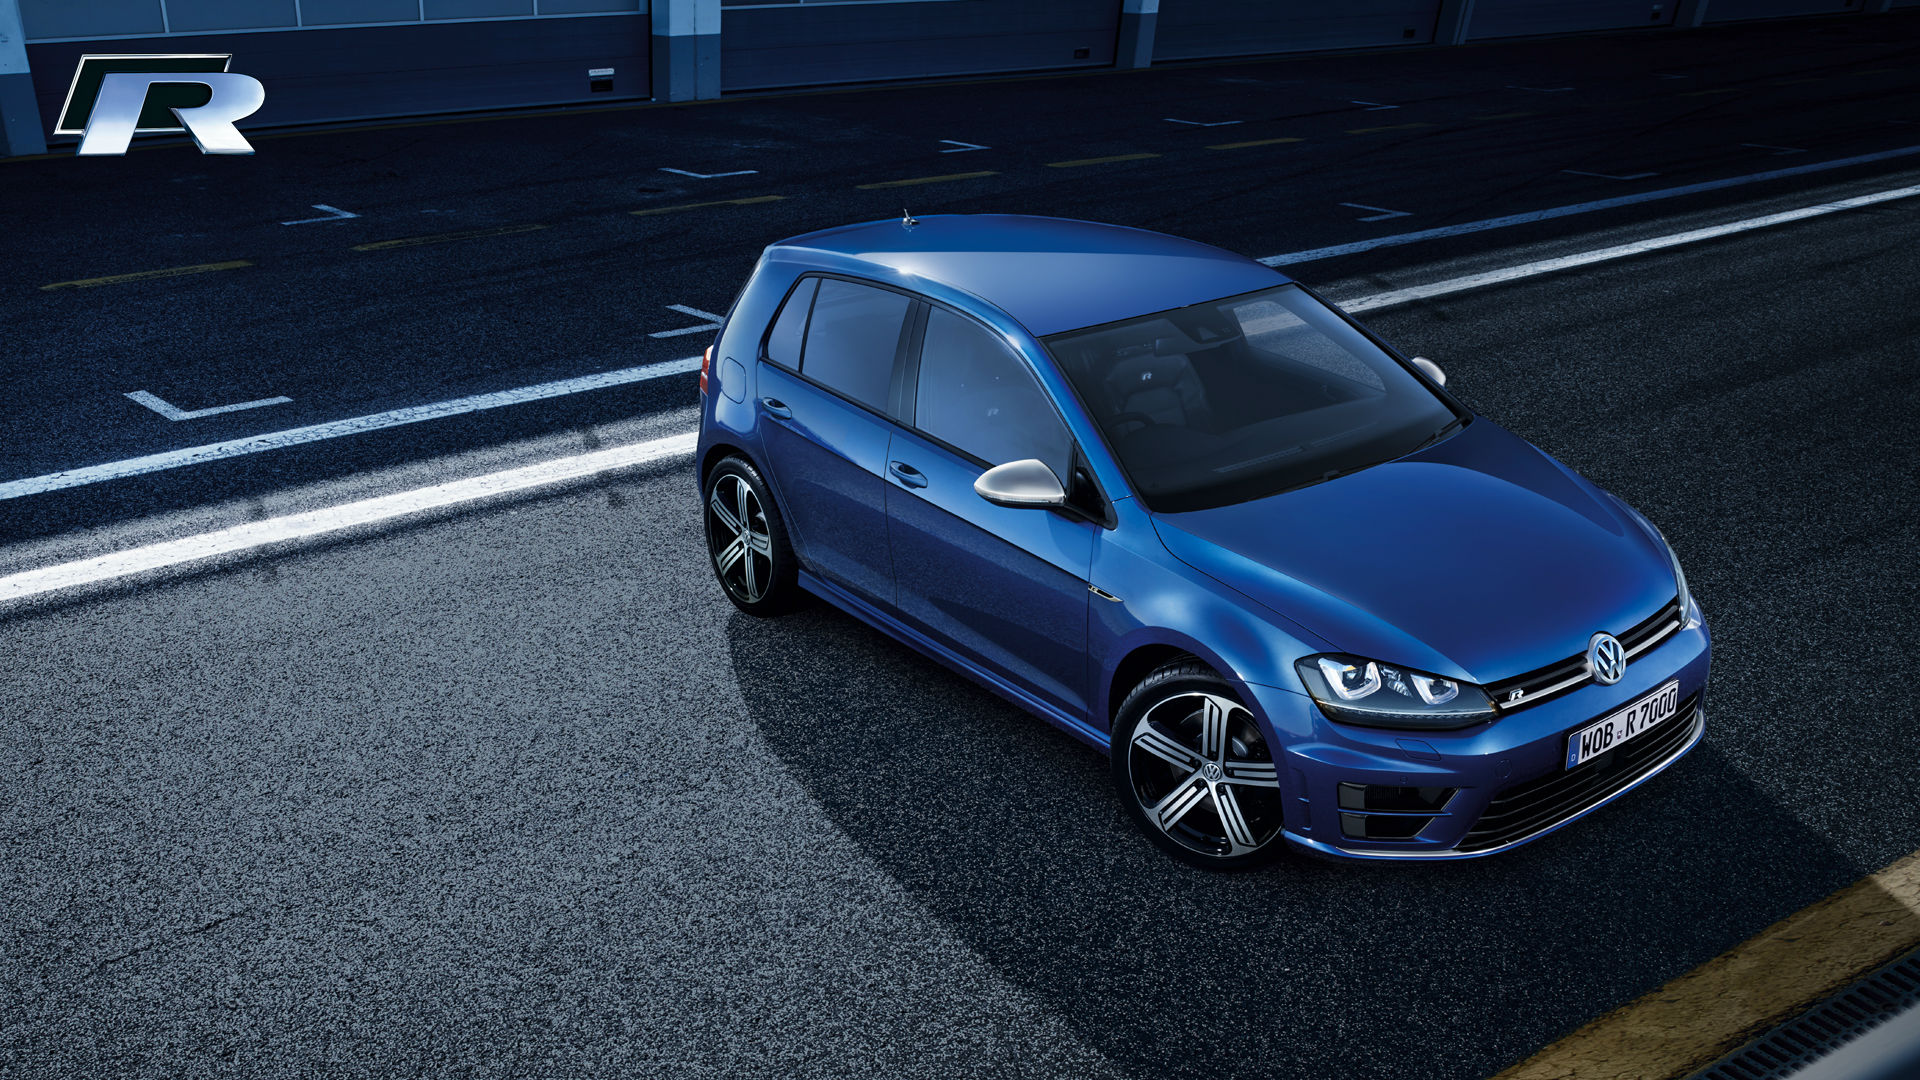 wp contentuploads201402volkswagen golf r 1080p car wallpaperjpg 1920x1080